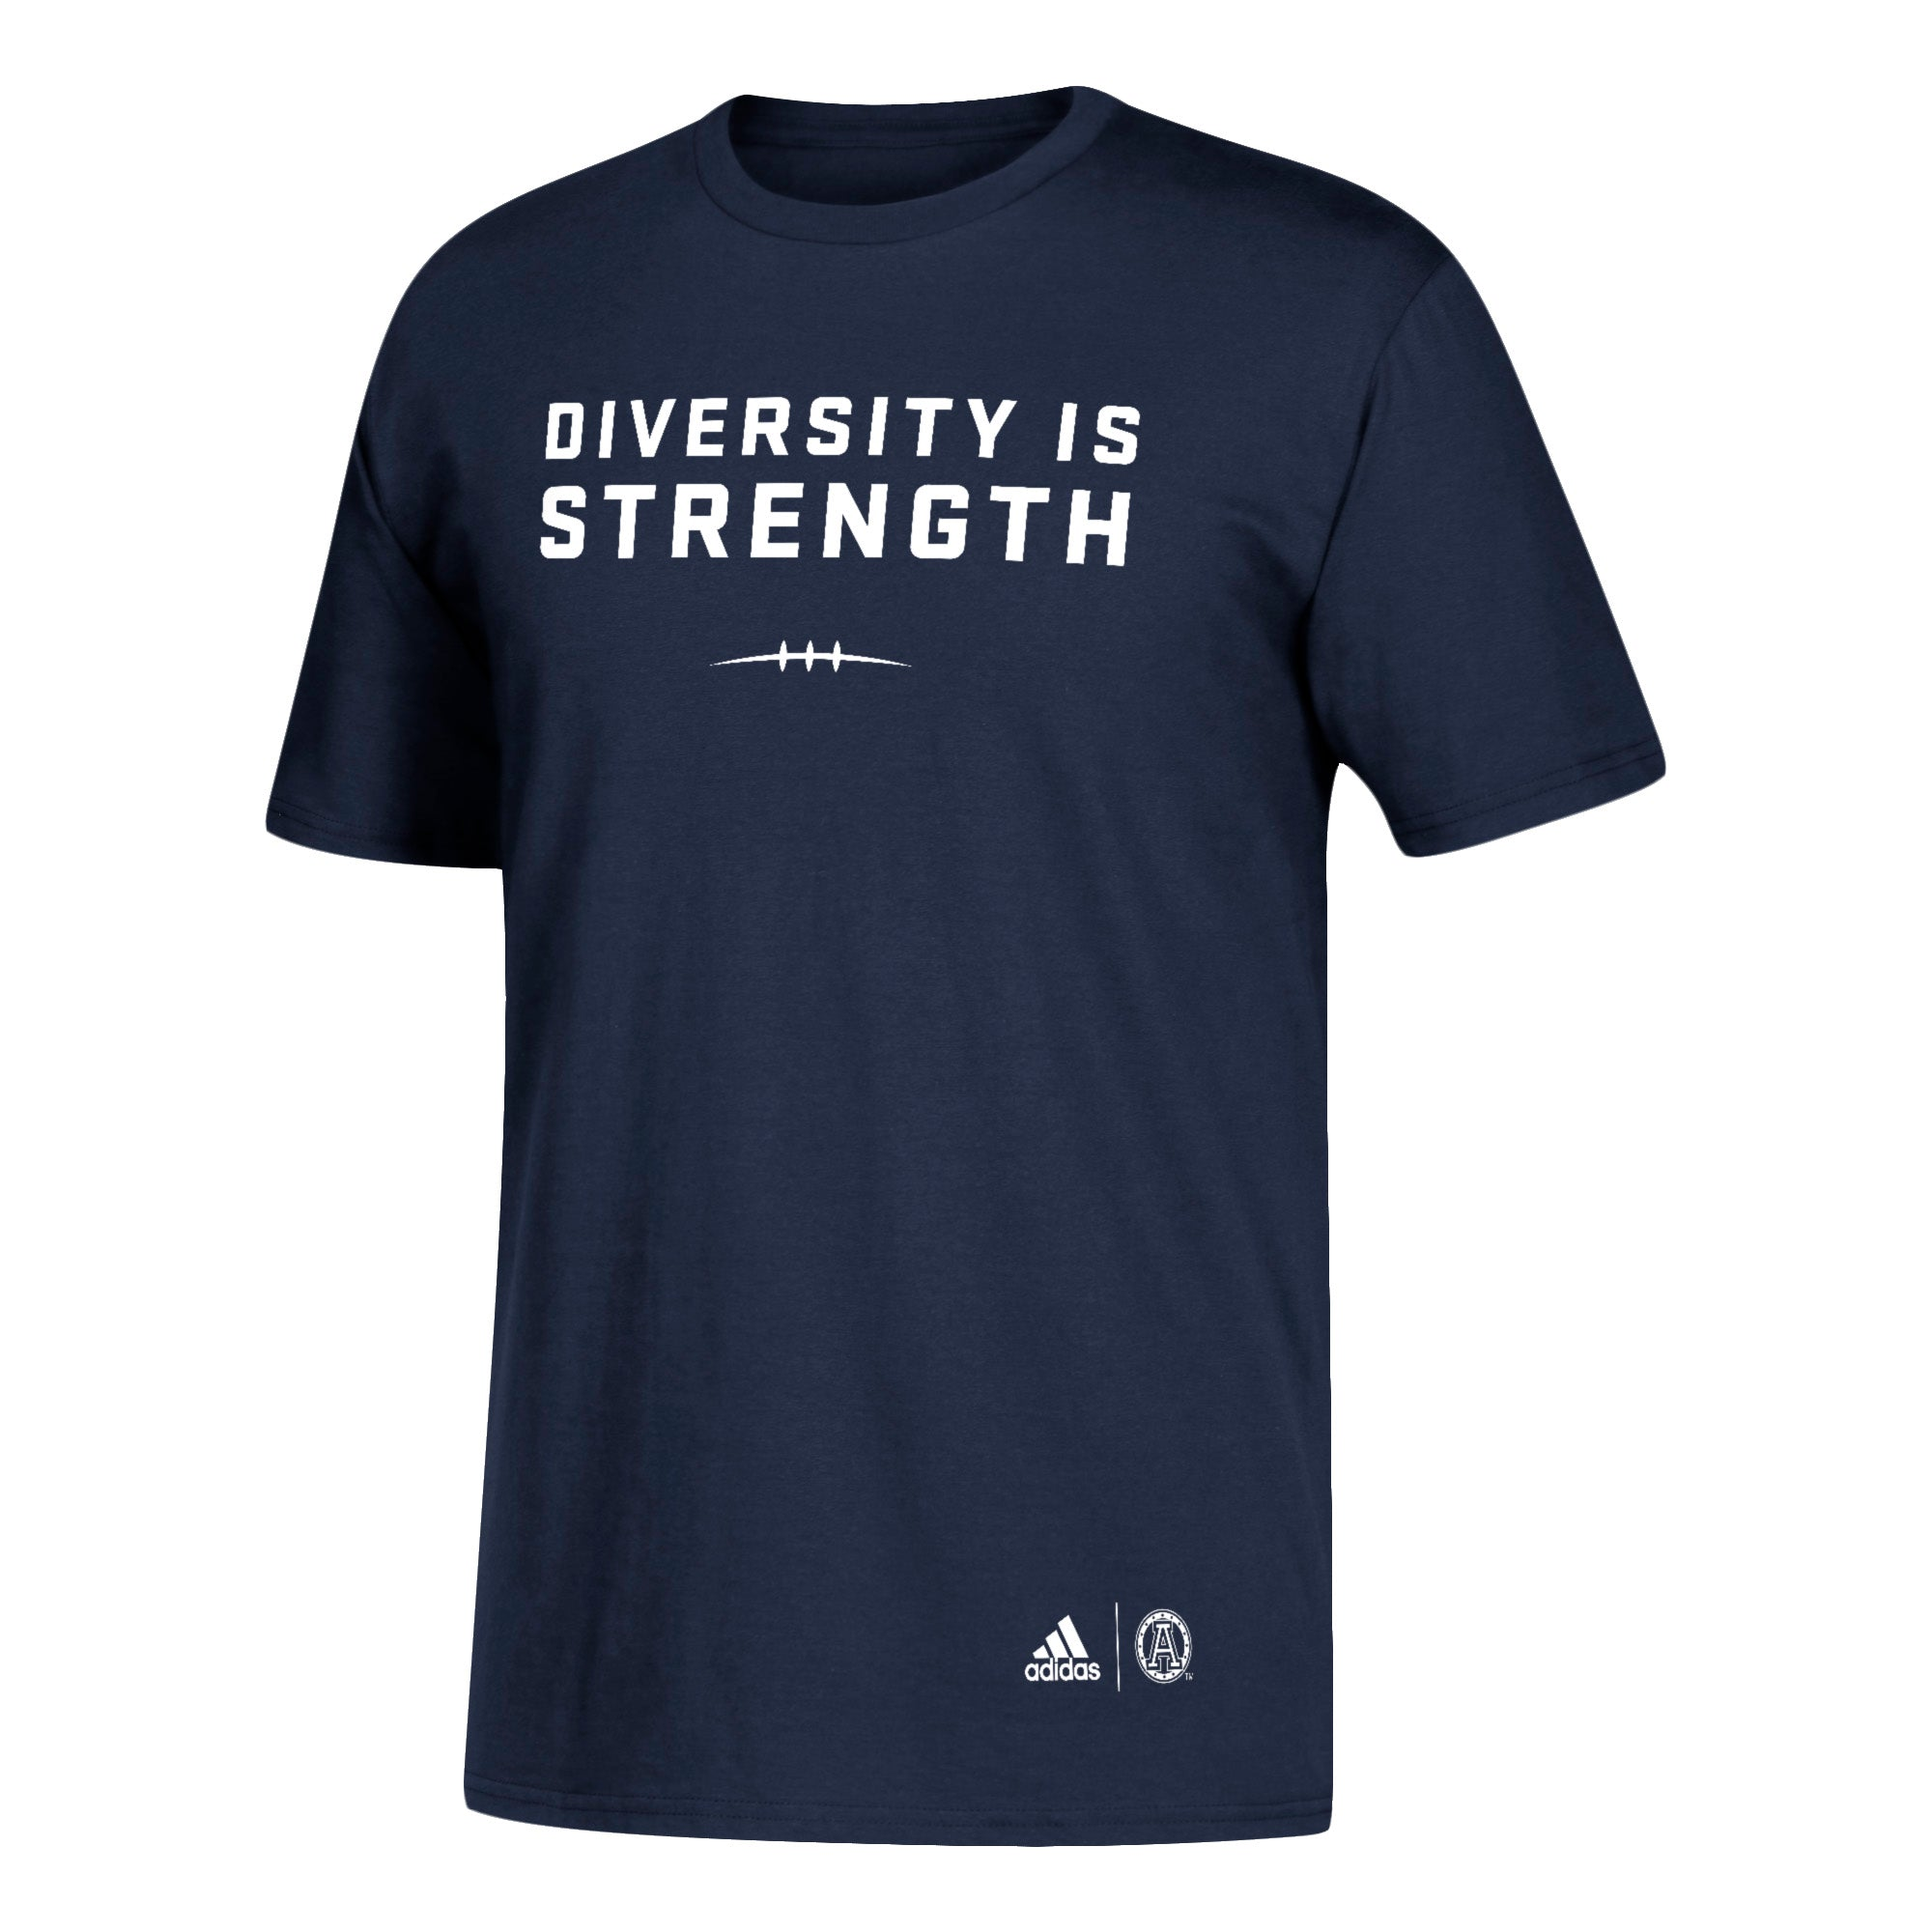 Toronto Argonauts Diversity is Strength Shirt